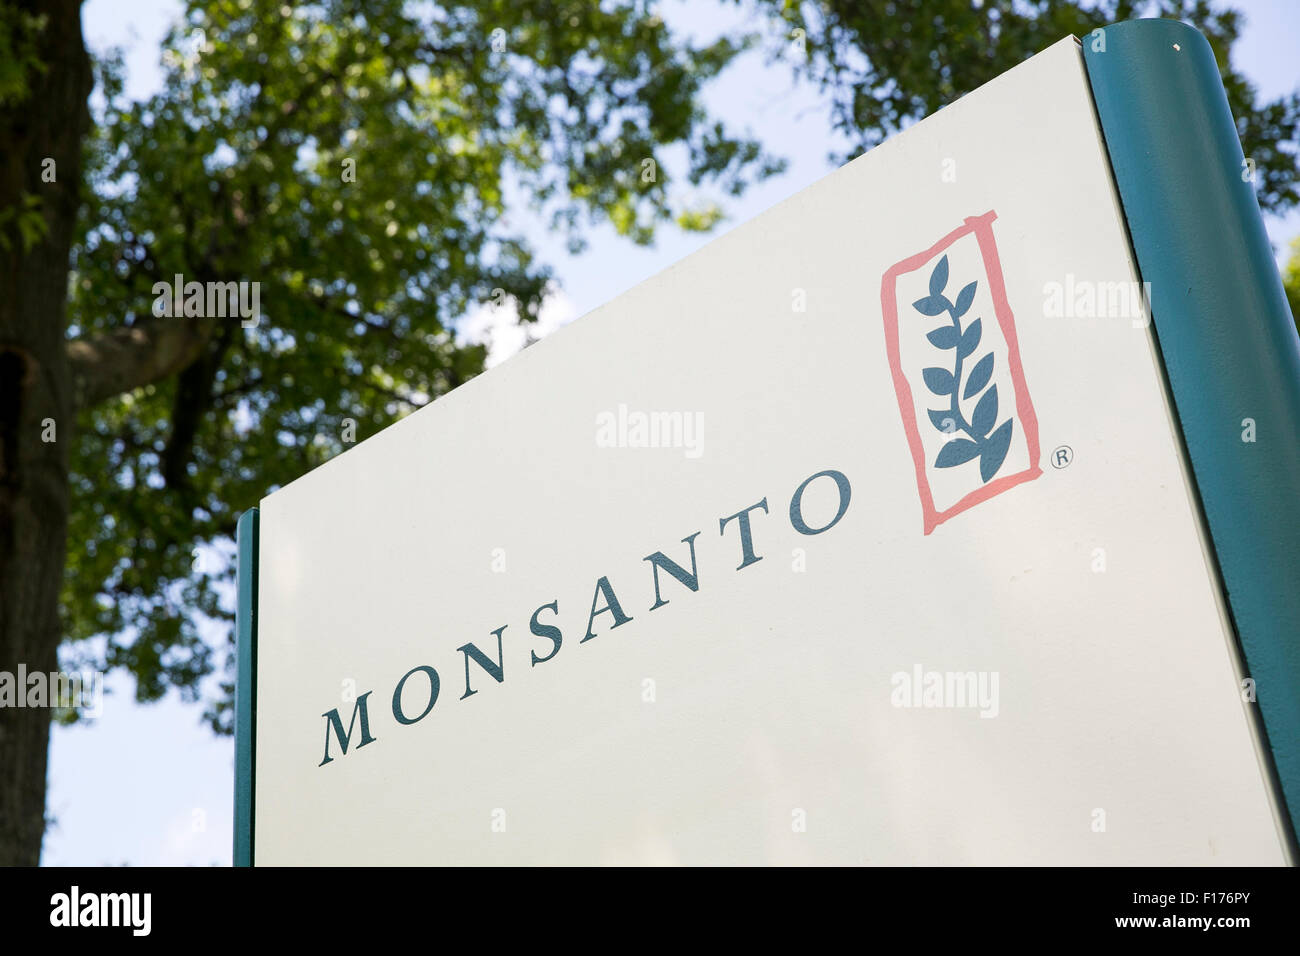 A logo sign outside of the headquarters of the Monsanto Company, in St. Louis, Missouri on August 16, 2015. - Stock Image